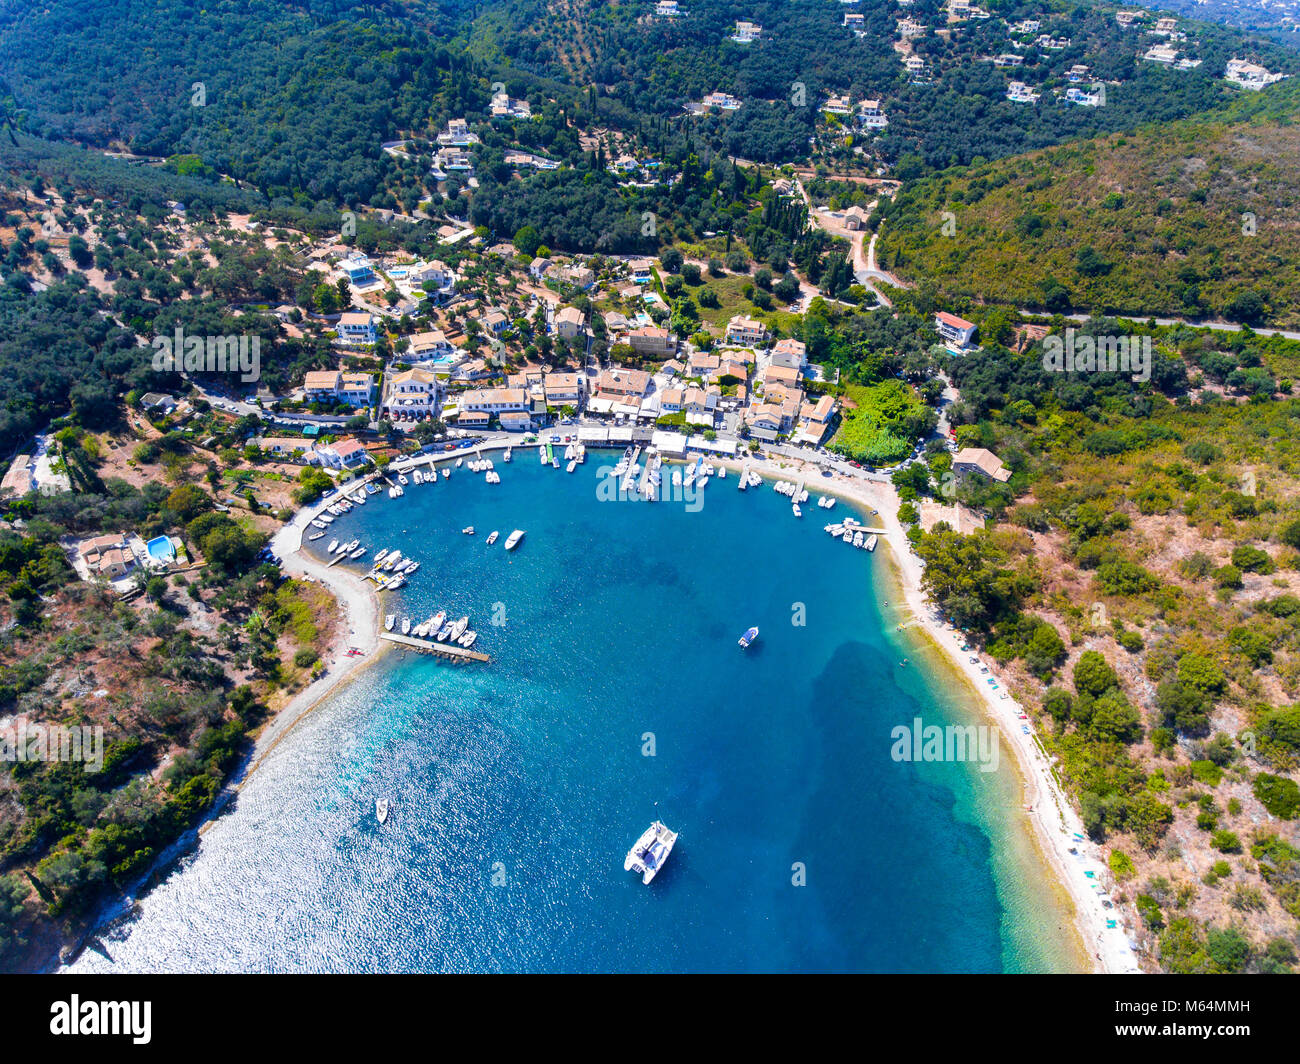 Agios Stefanos bay, one of the most beautiful fishing villages in Corfu Island. Kerkyra, Greece. Aerial view. - Stock Image